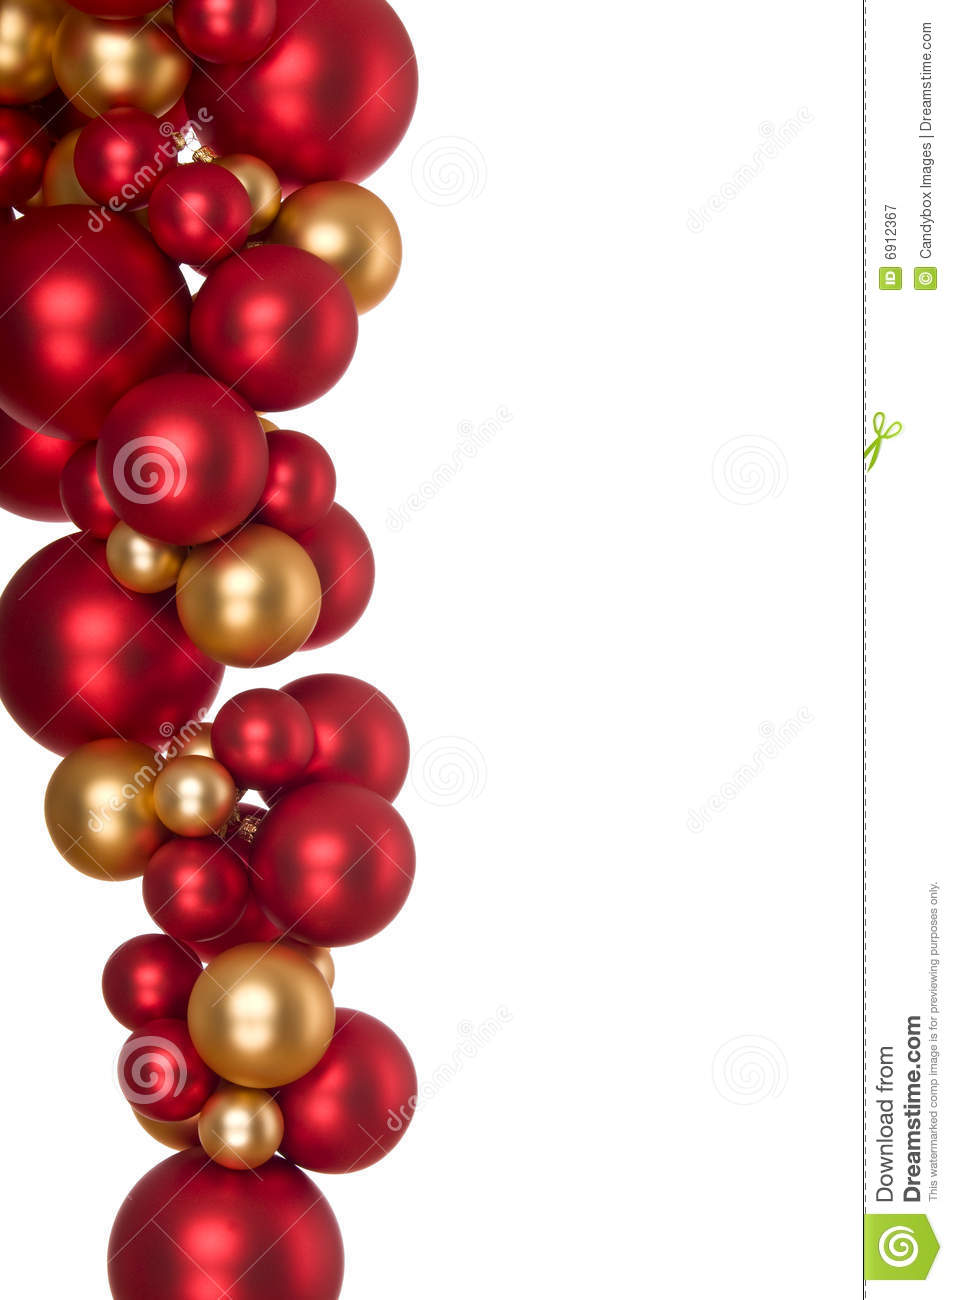 Red and gold christmas ornaments - Hanging Gold And Red Christmas Balls